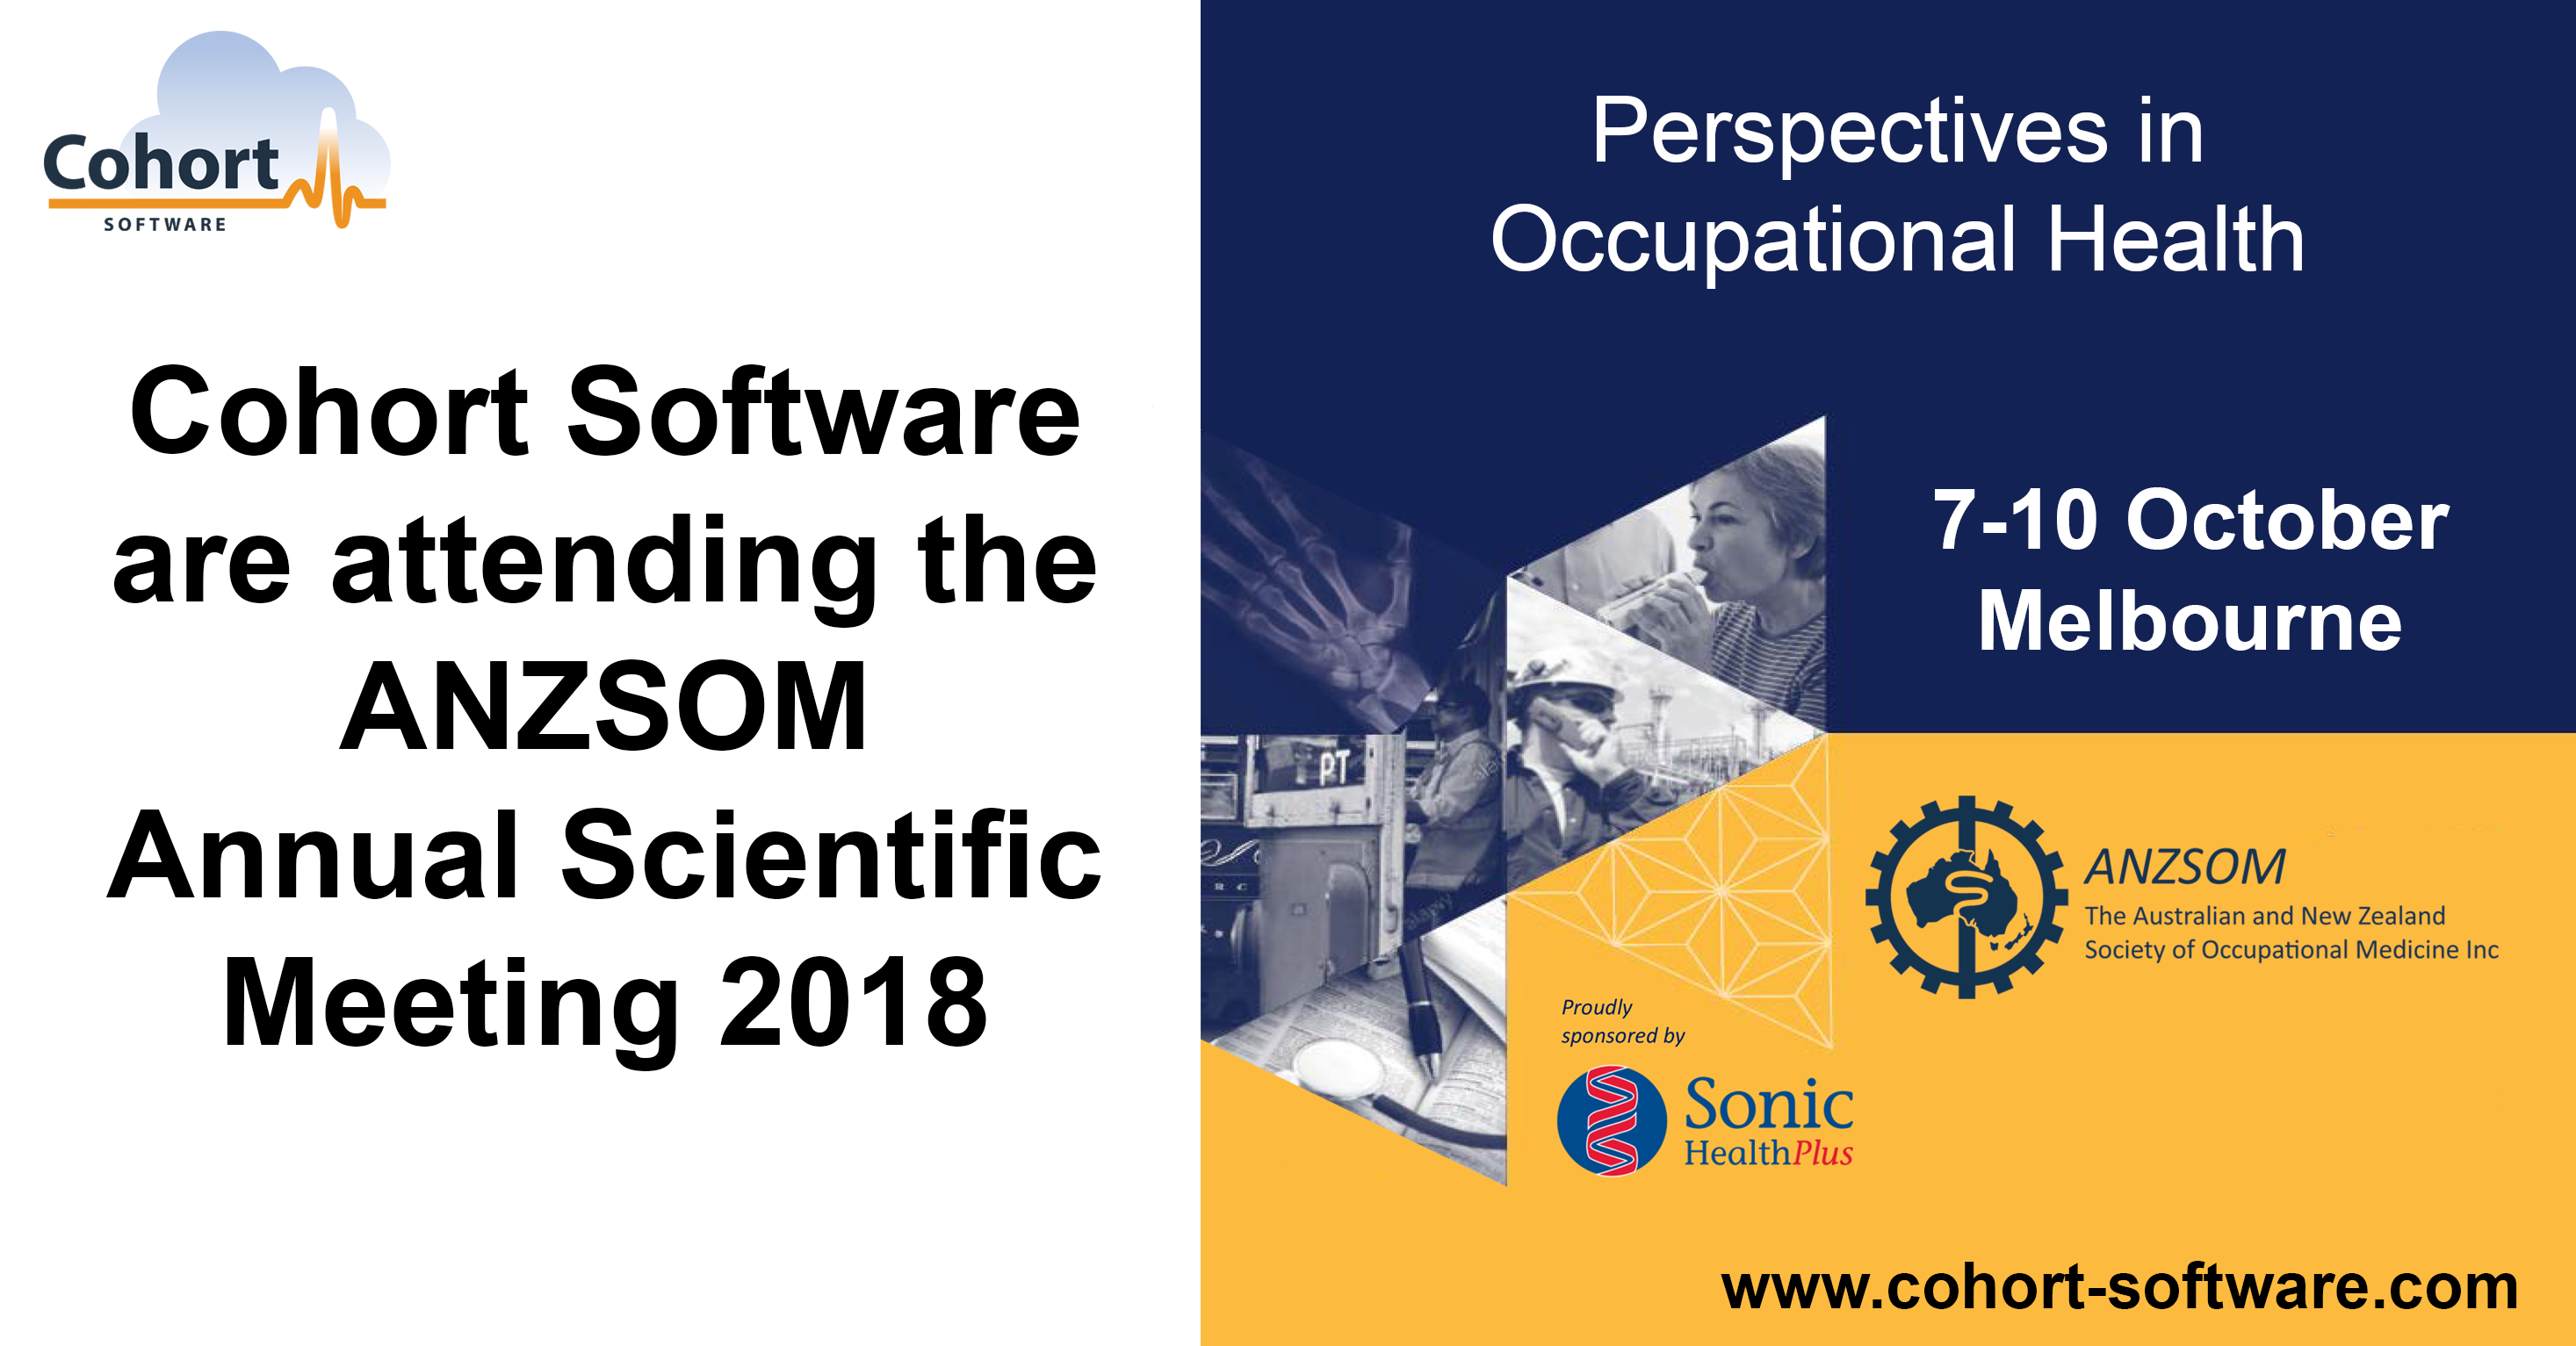 ANZSOM Annual Scientific Meeting 2018